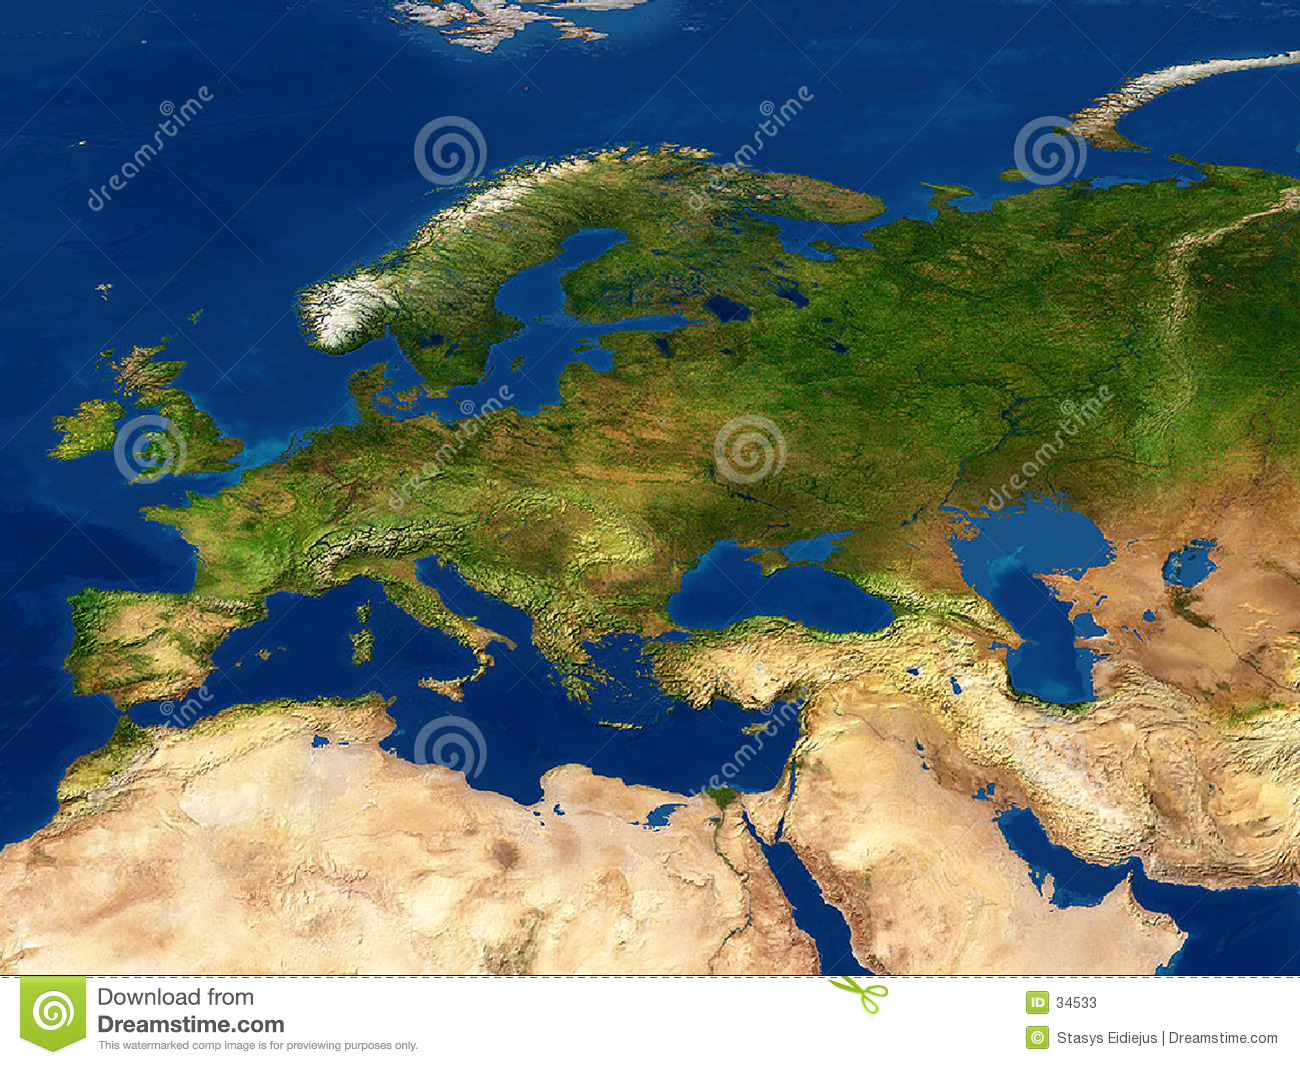 Earth view - map, Europe